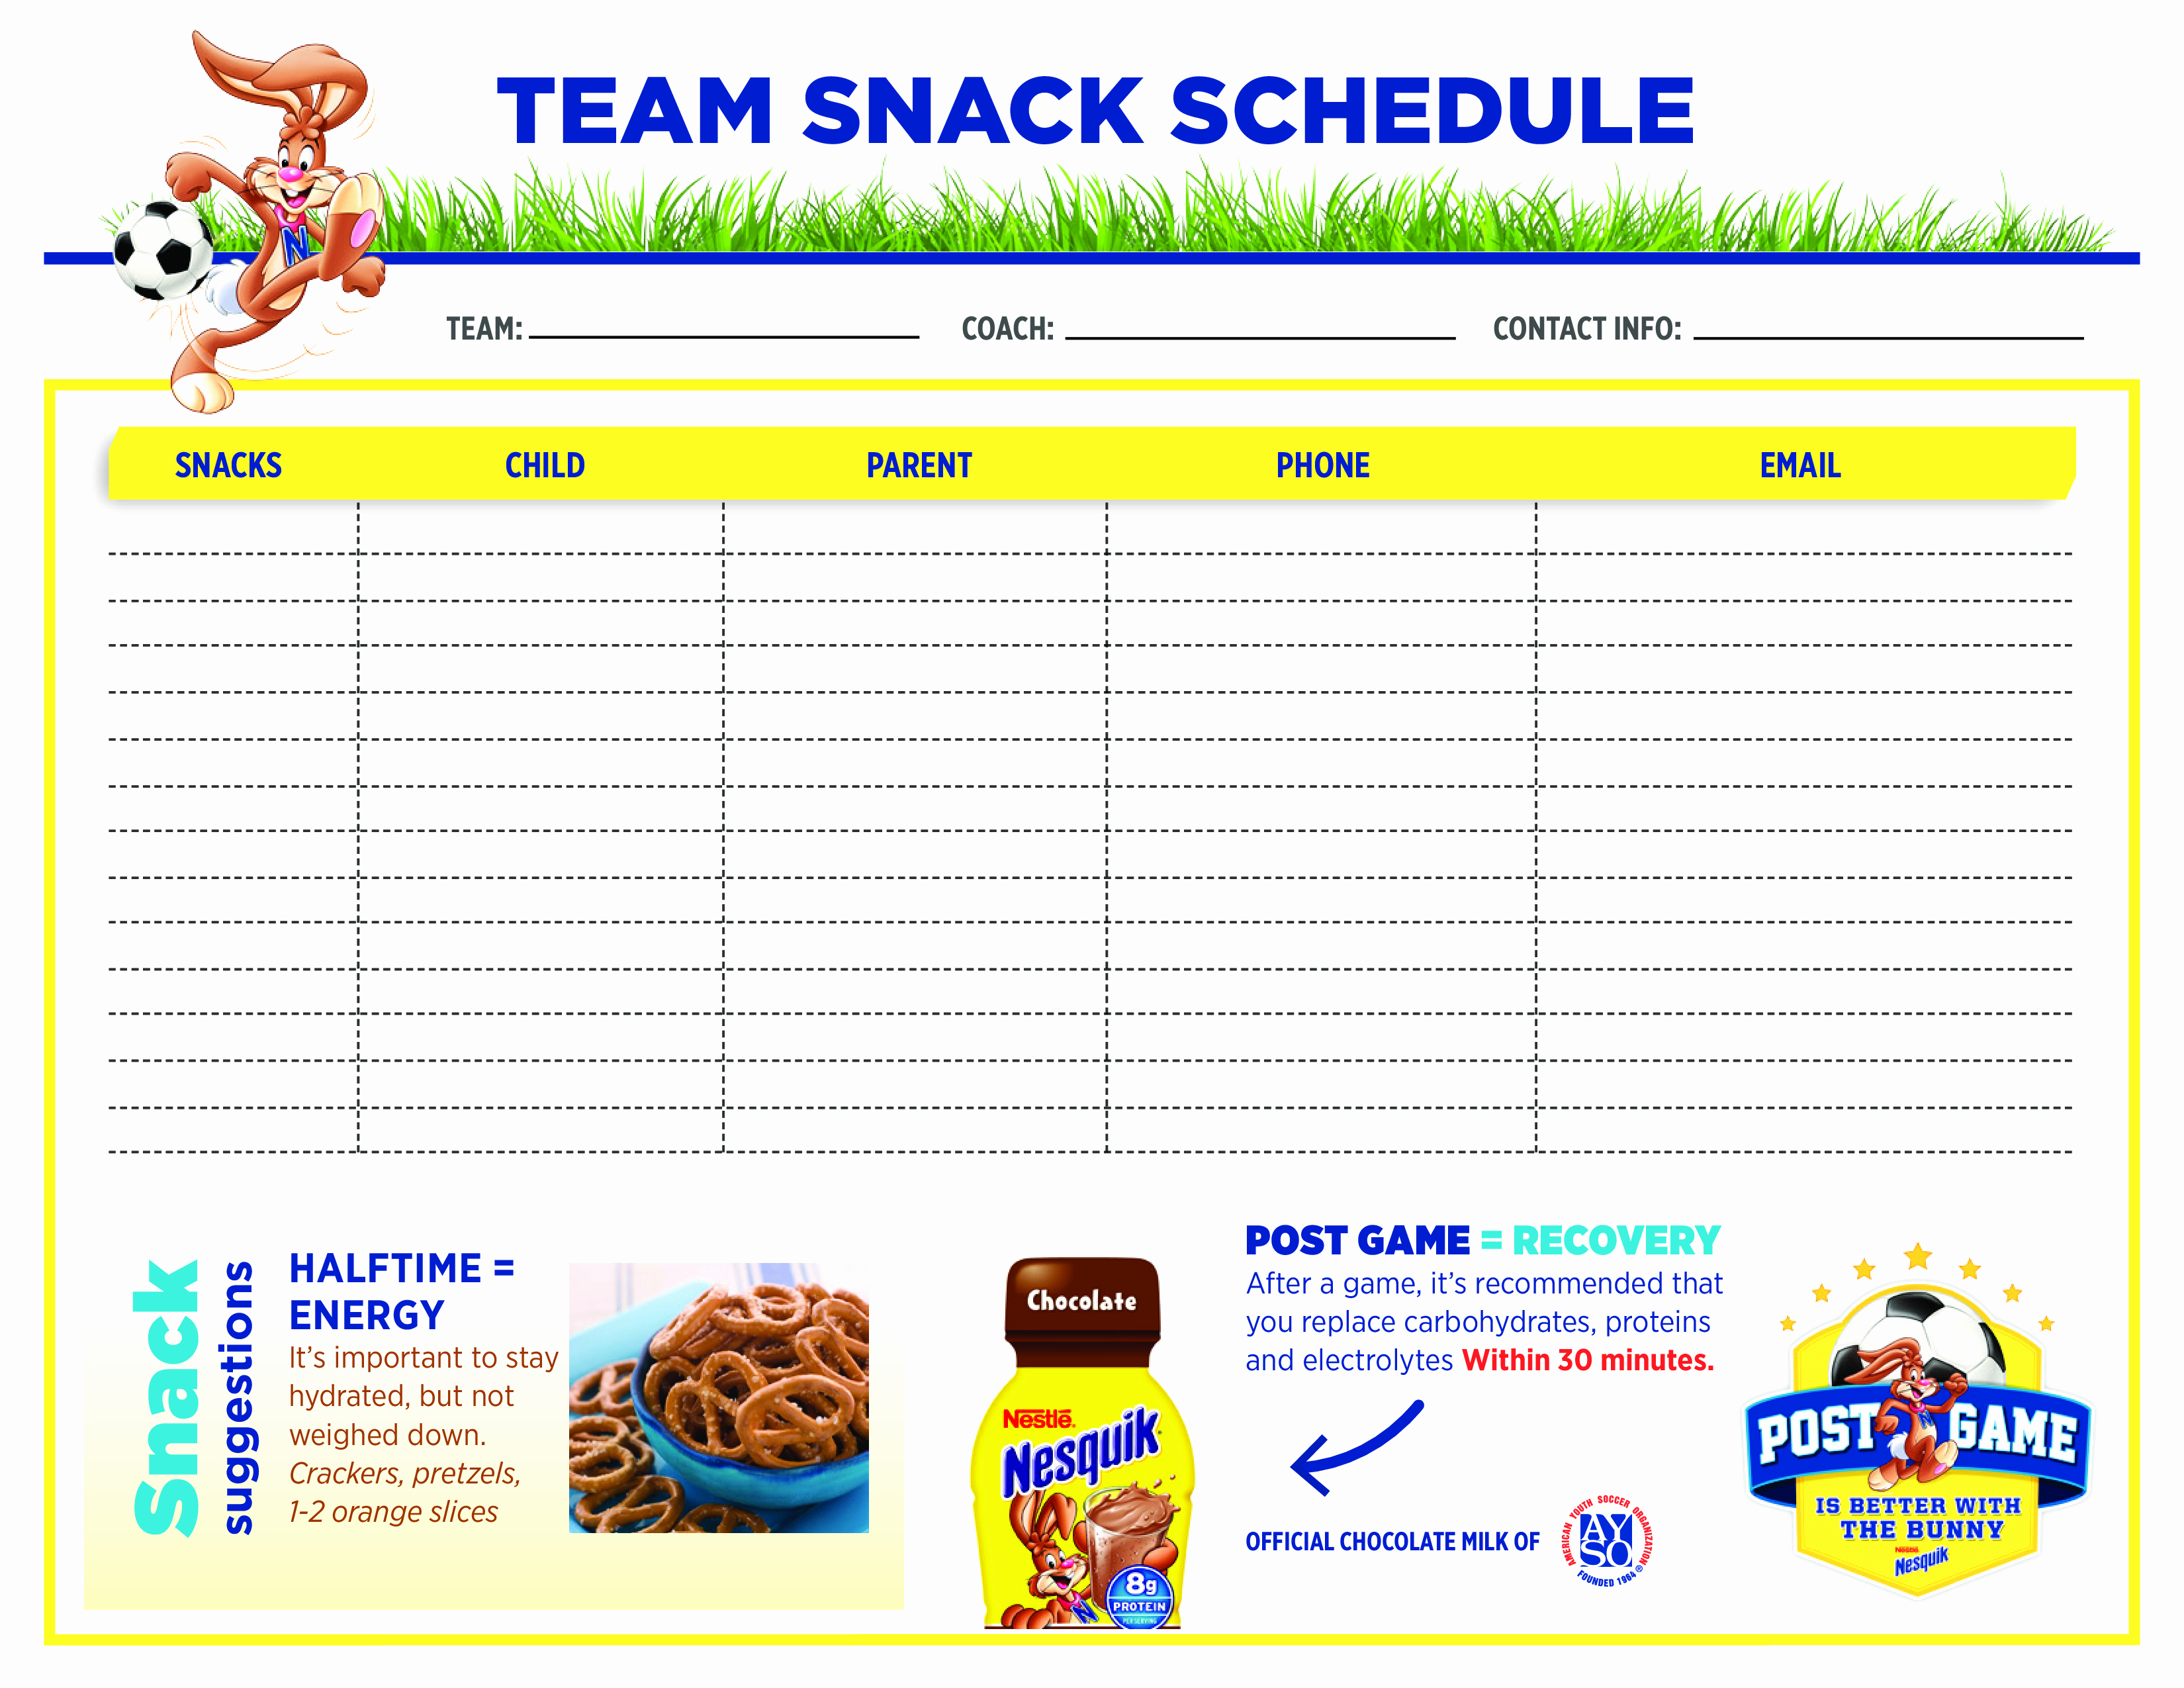 Team Snack Sign Up Sheet Lovely Free Team Snack Schedule